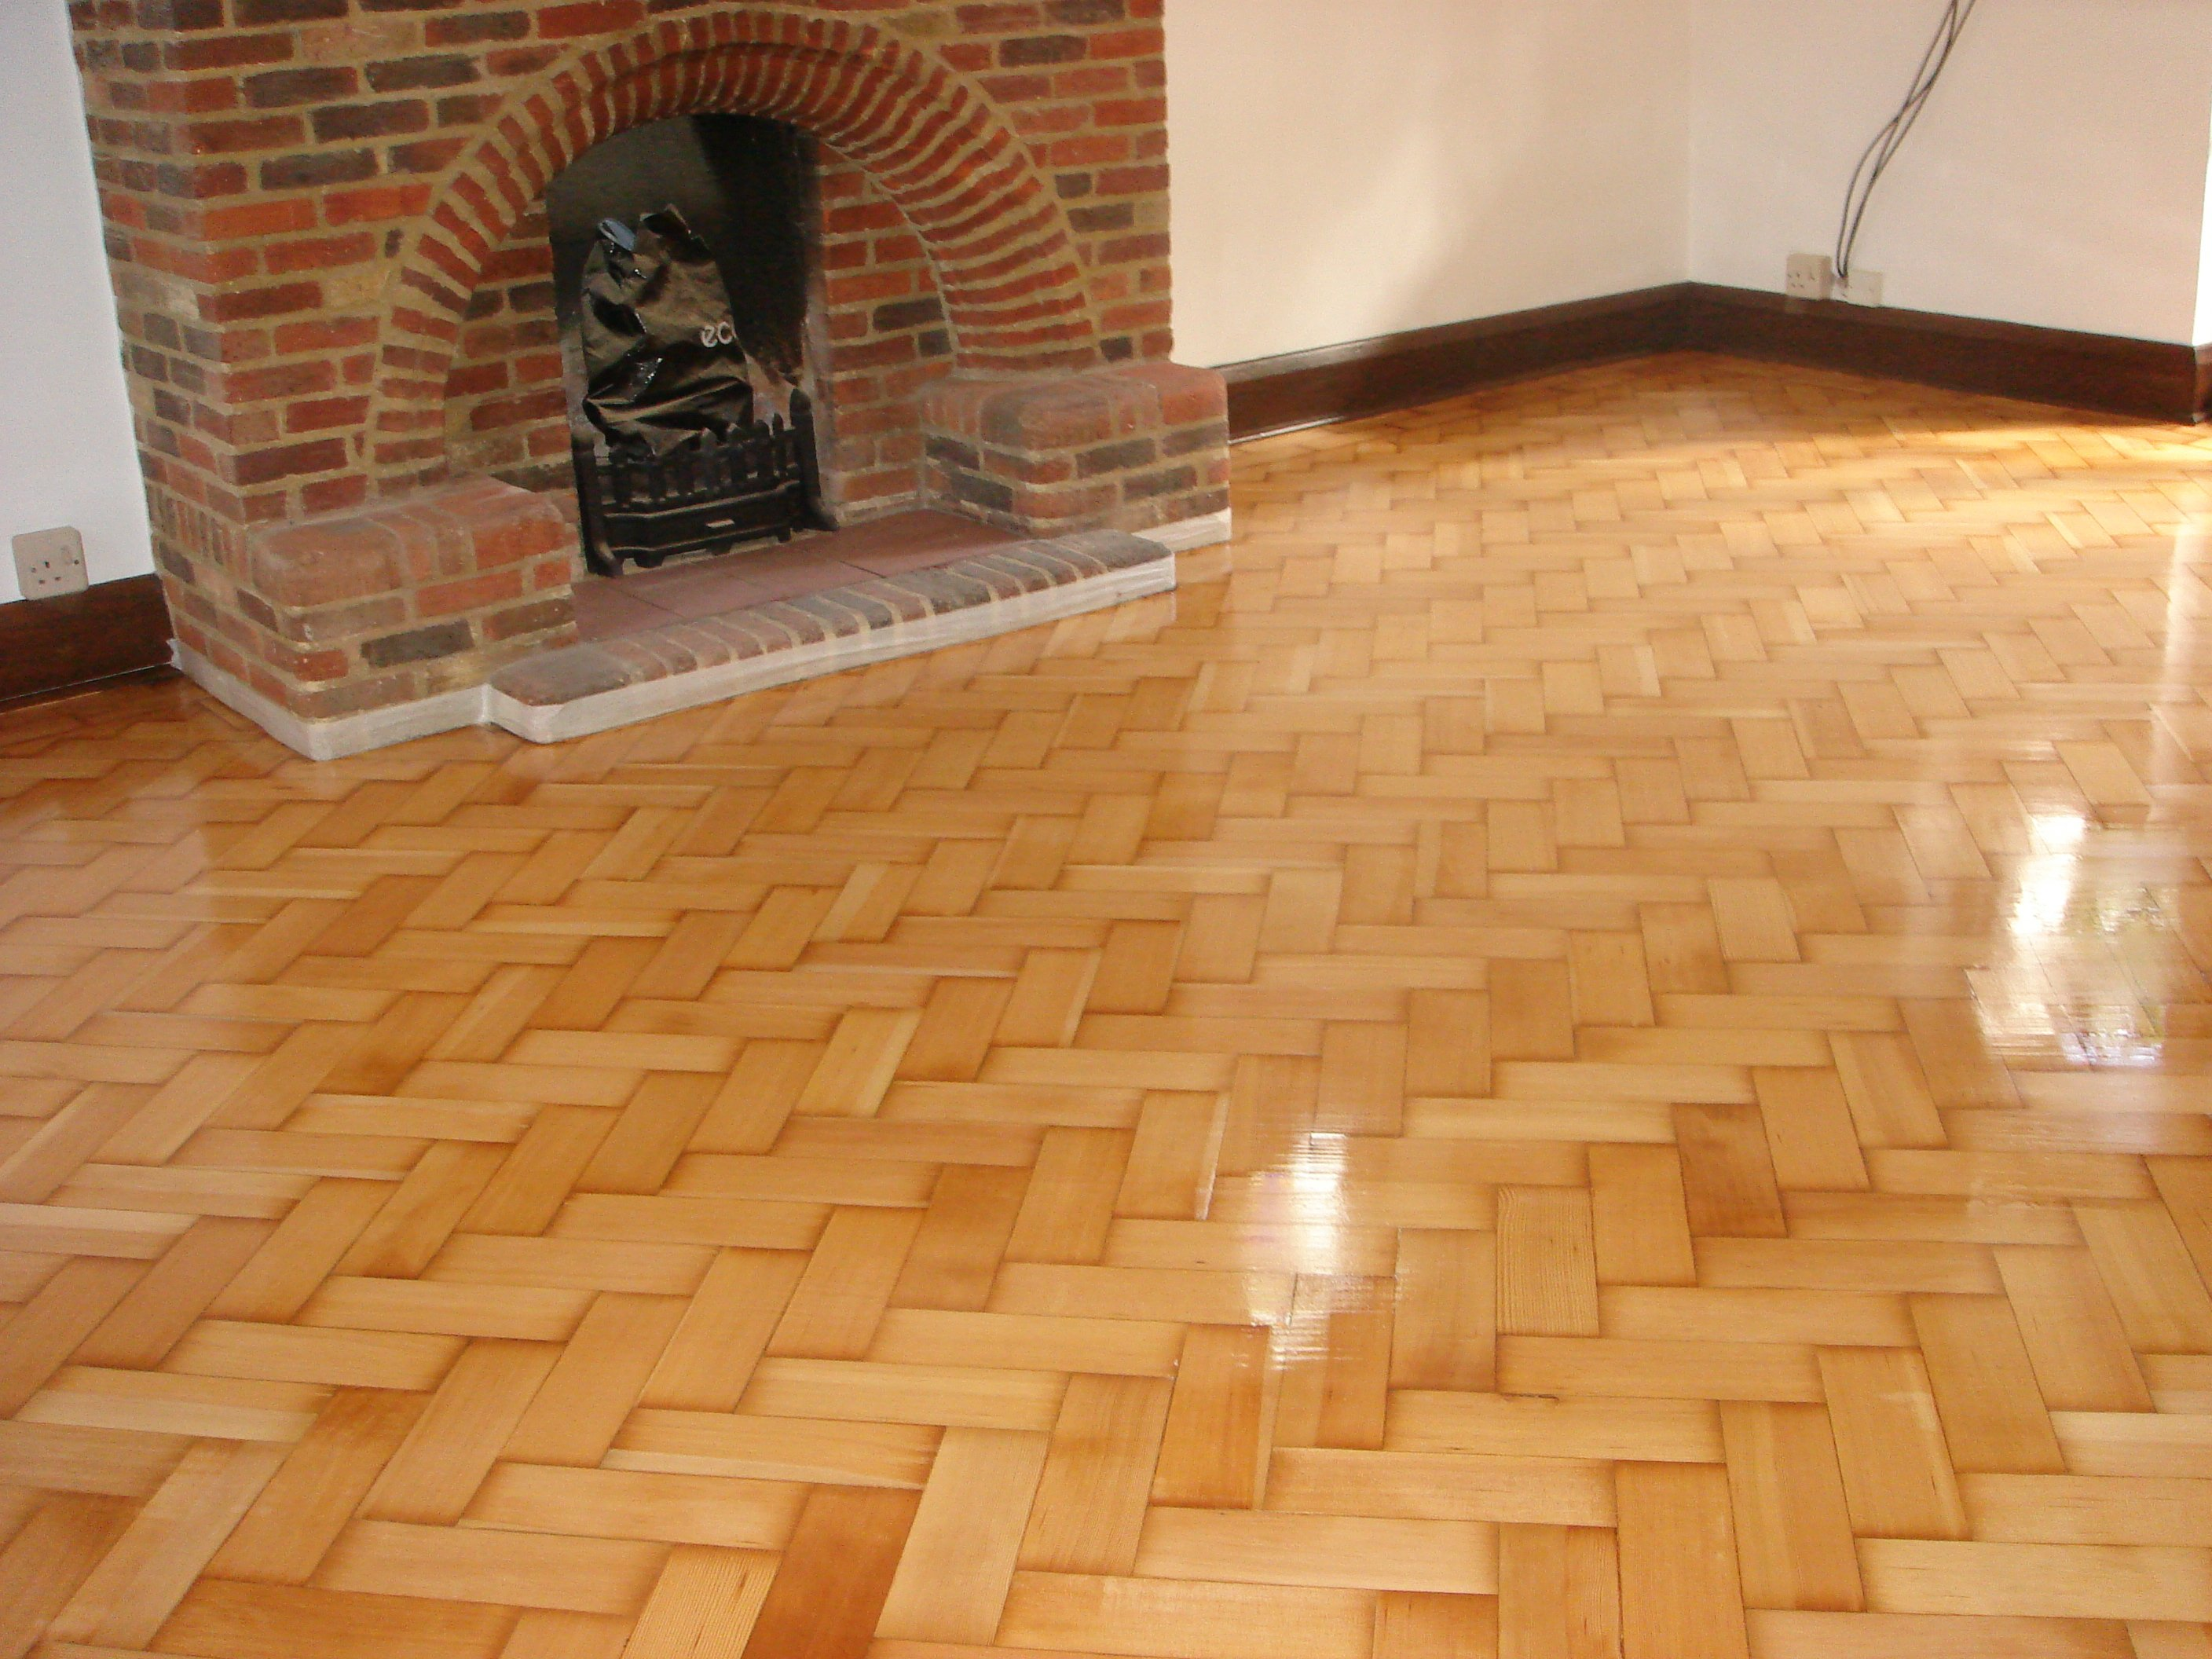 refurbished and polished parquet floor